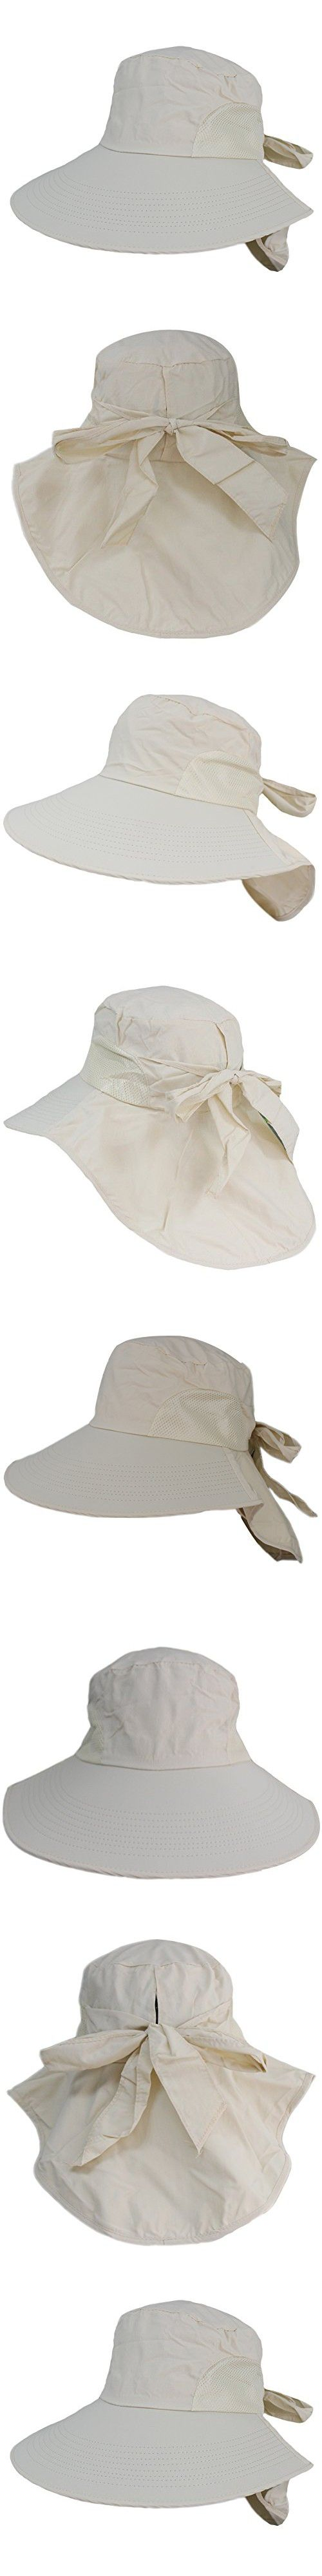 Women Wide Brim Floppy Mesh Beach Travel Sun Bowknot Face Neck UV Hat Visor Cap (Biege)